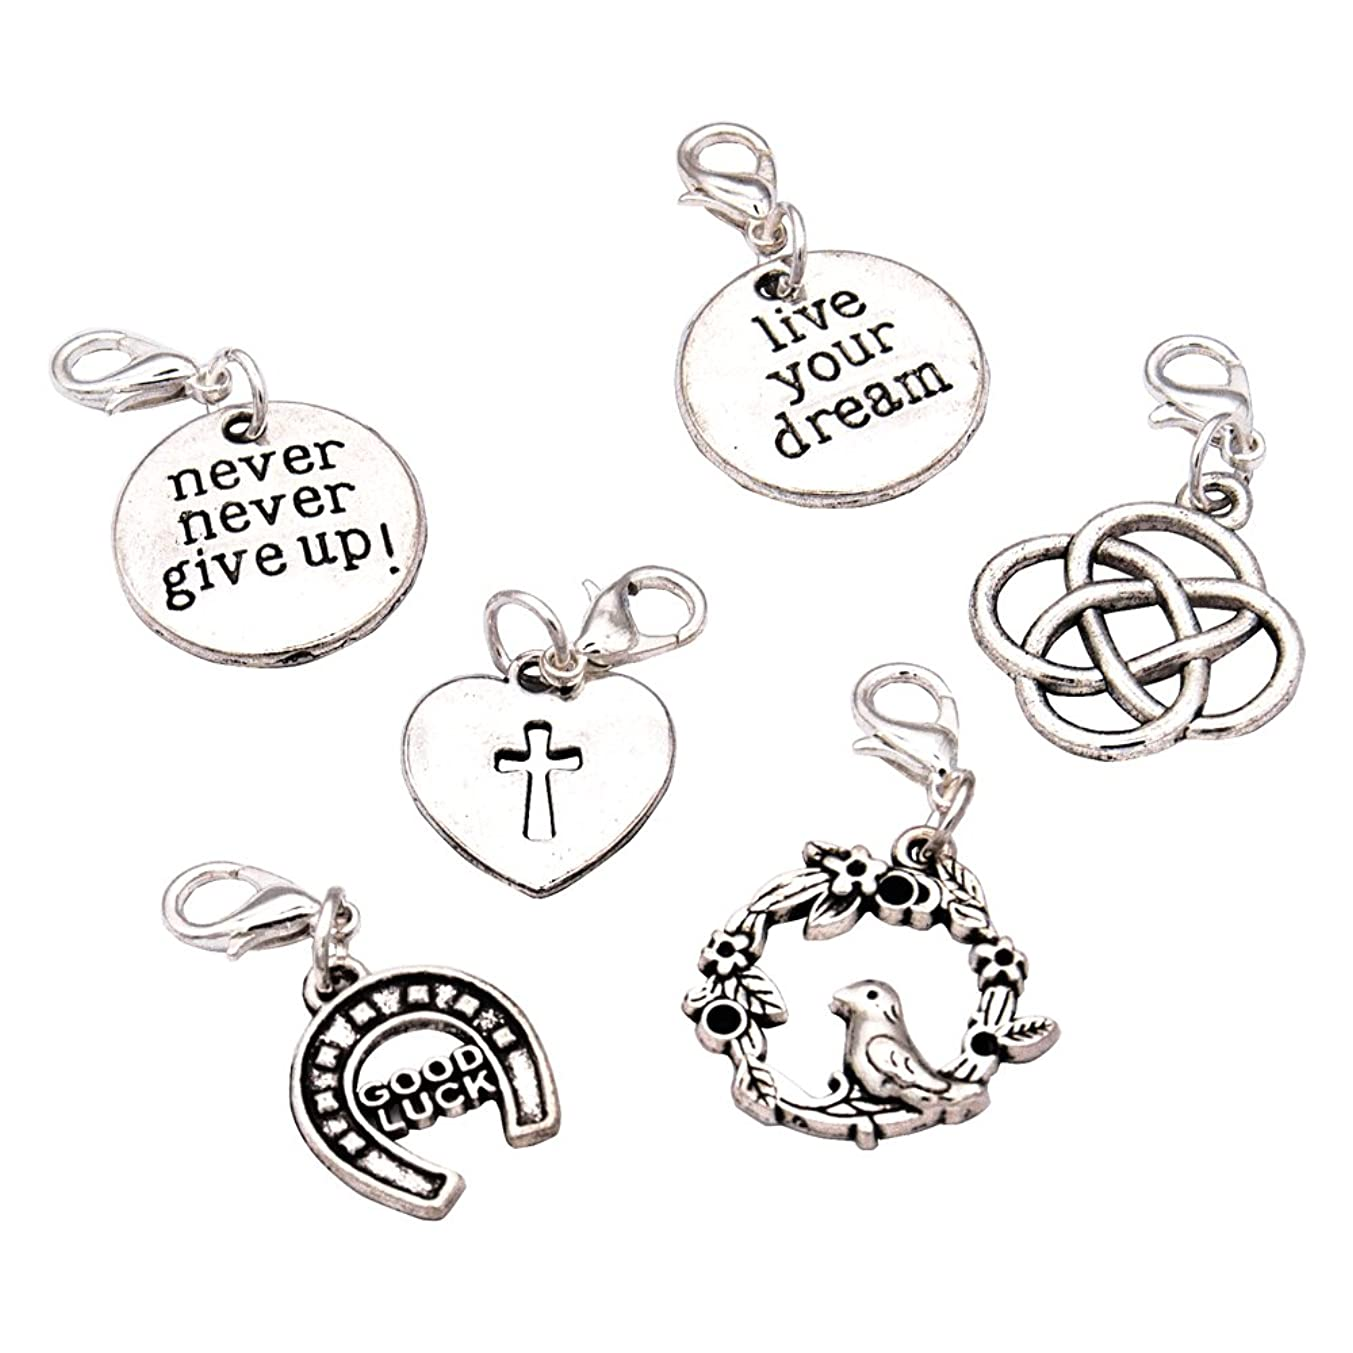 Ascrafter Character Zipper Pull Charms - Set of 6 - Knitting Stitch Markers, Crochet Markers, Purse Charms